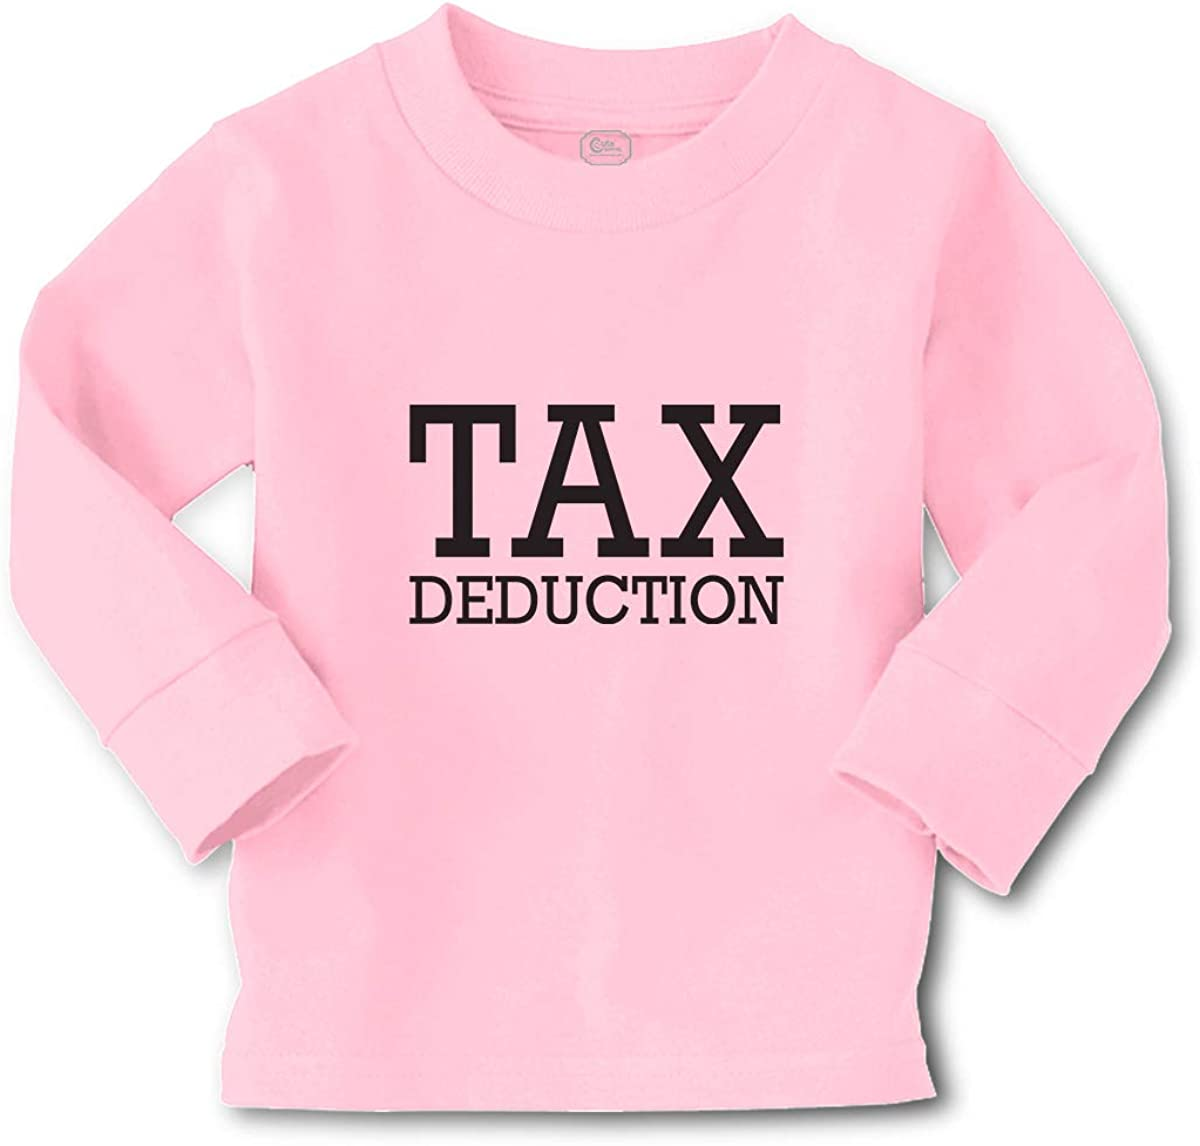 Cute Rascals Kids Long Sleeve T Shirt Tax Deduction Black Funny Rubber Stamp Cotton Boy & Girl Clothes Funny Graphic Tee Soft Pink Design Only 4T